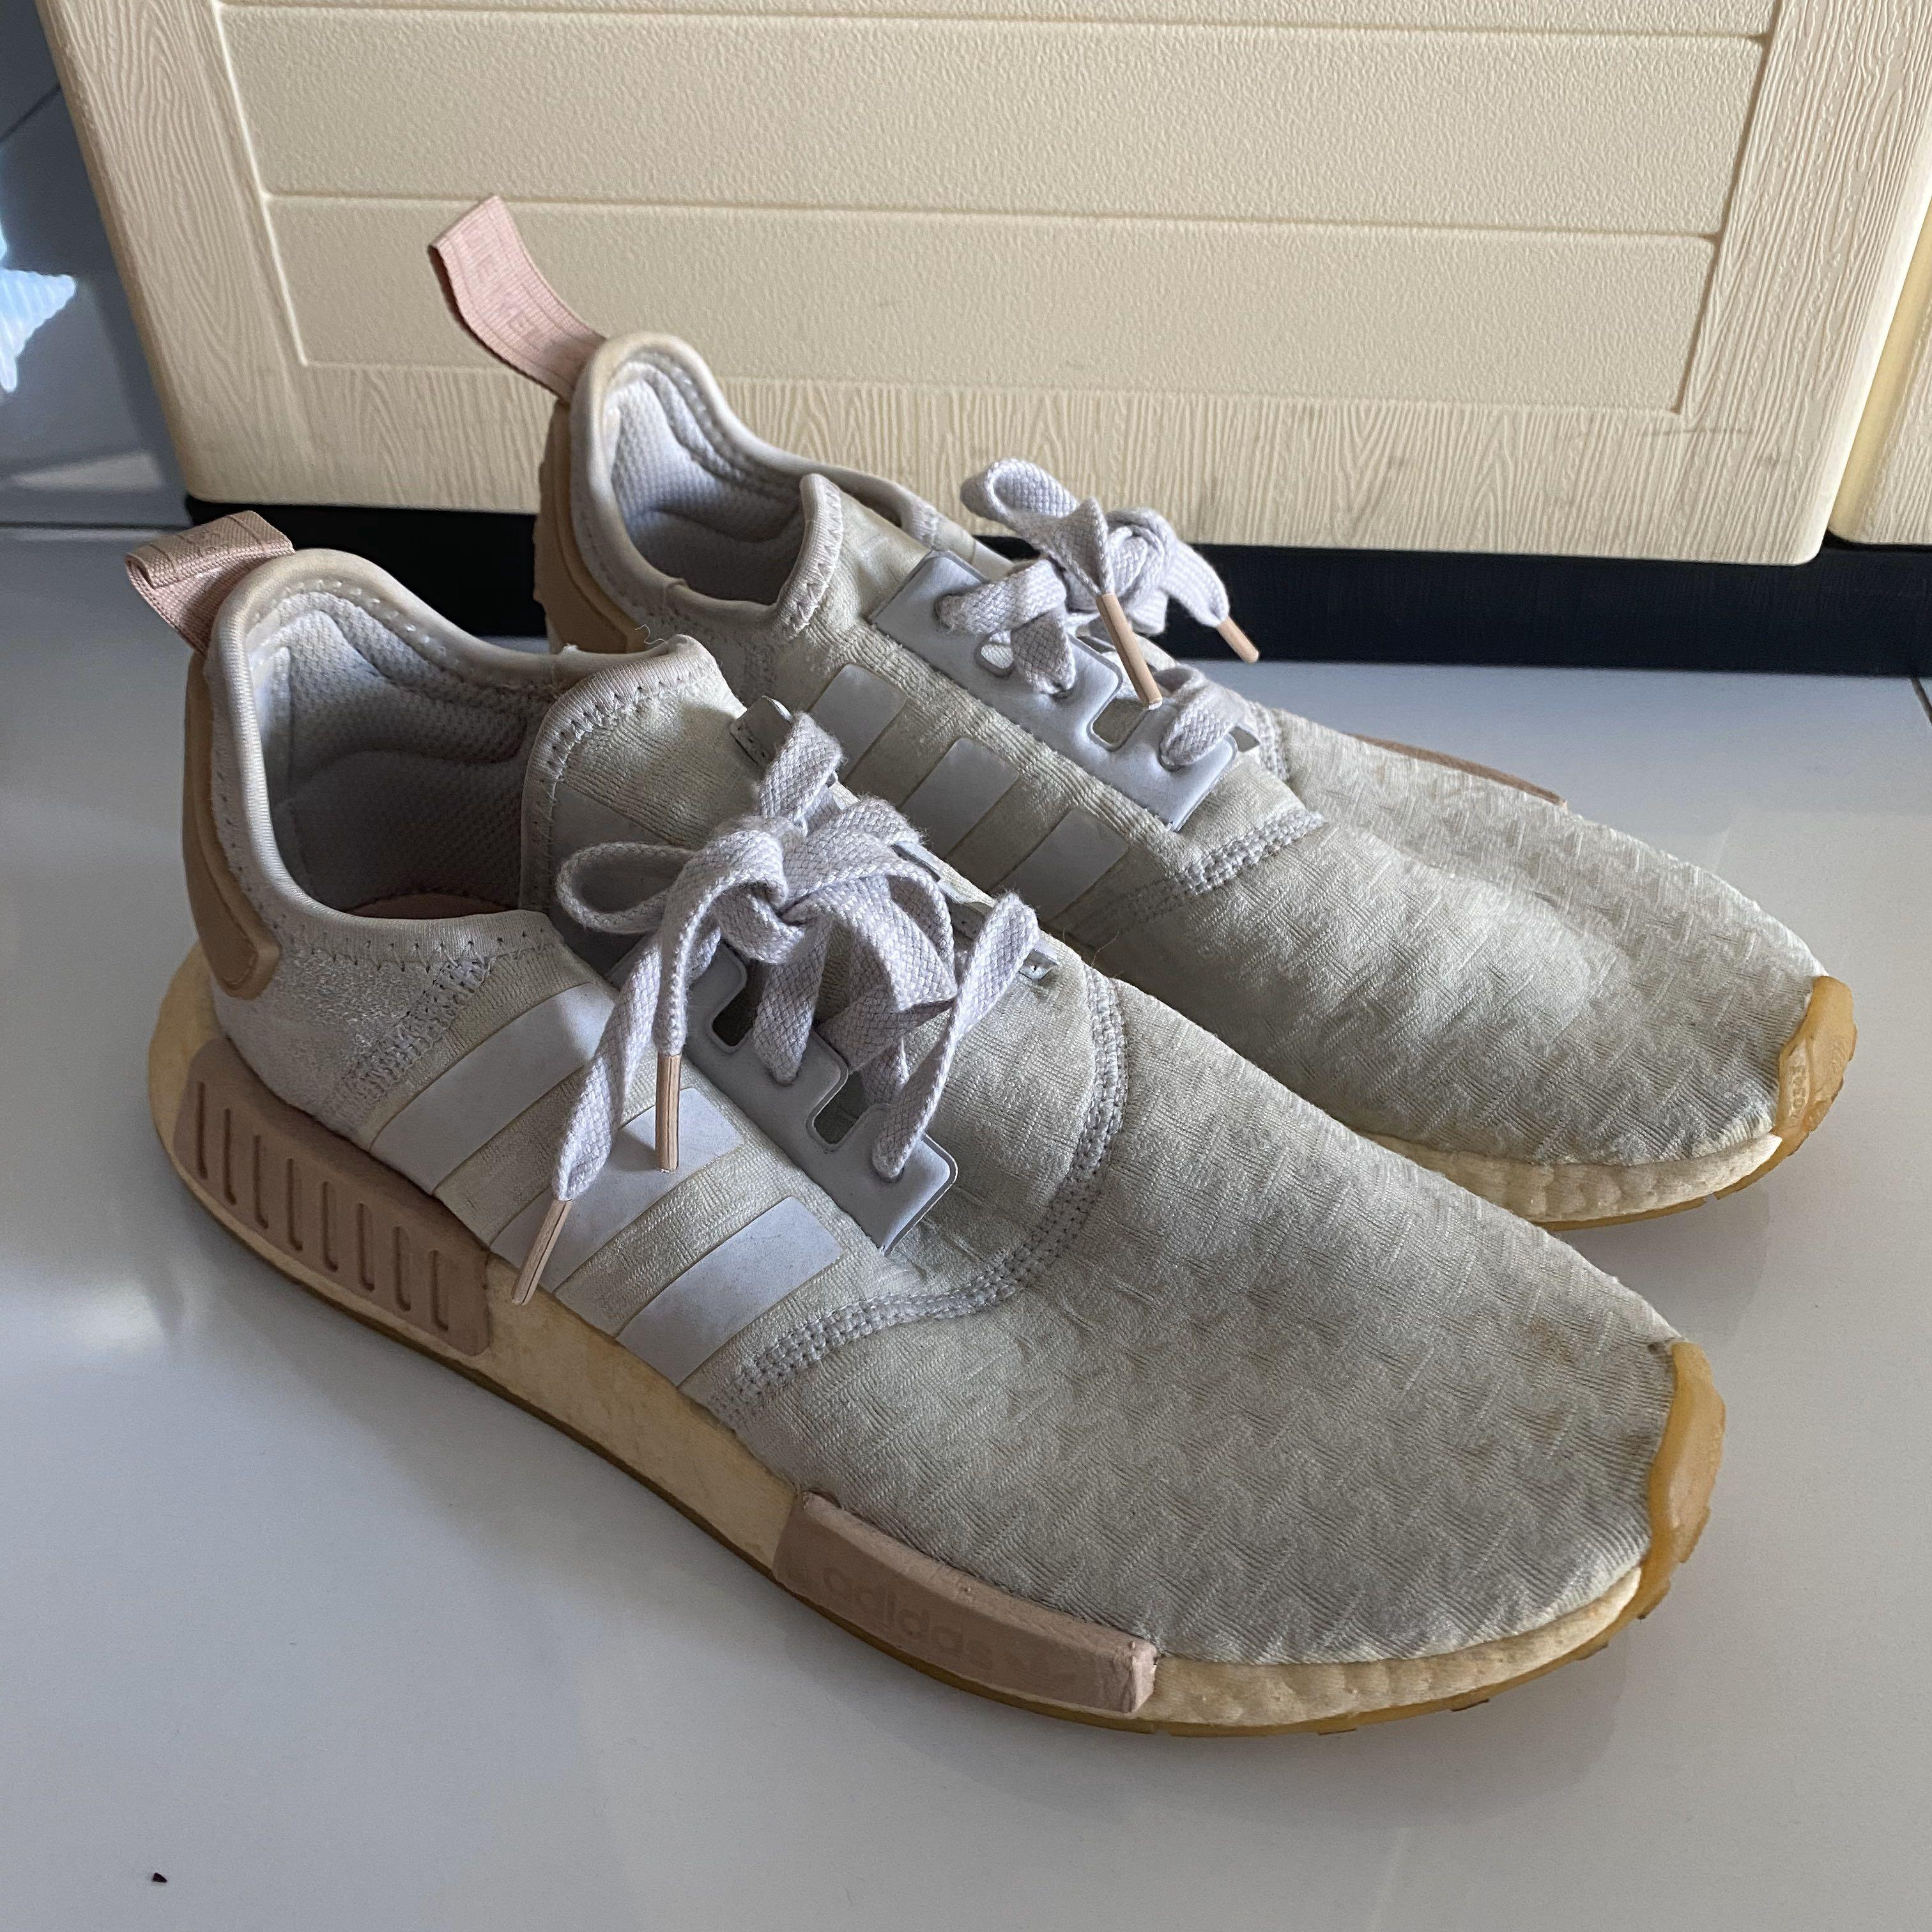 Wts Authentic Adidas Nmd R1 Grey Pink Women S Fashion Shoes